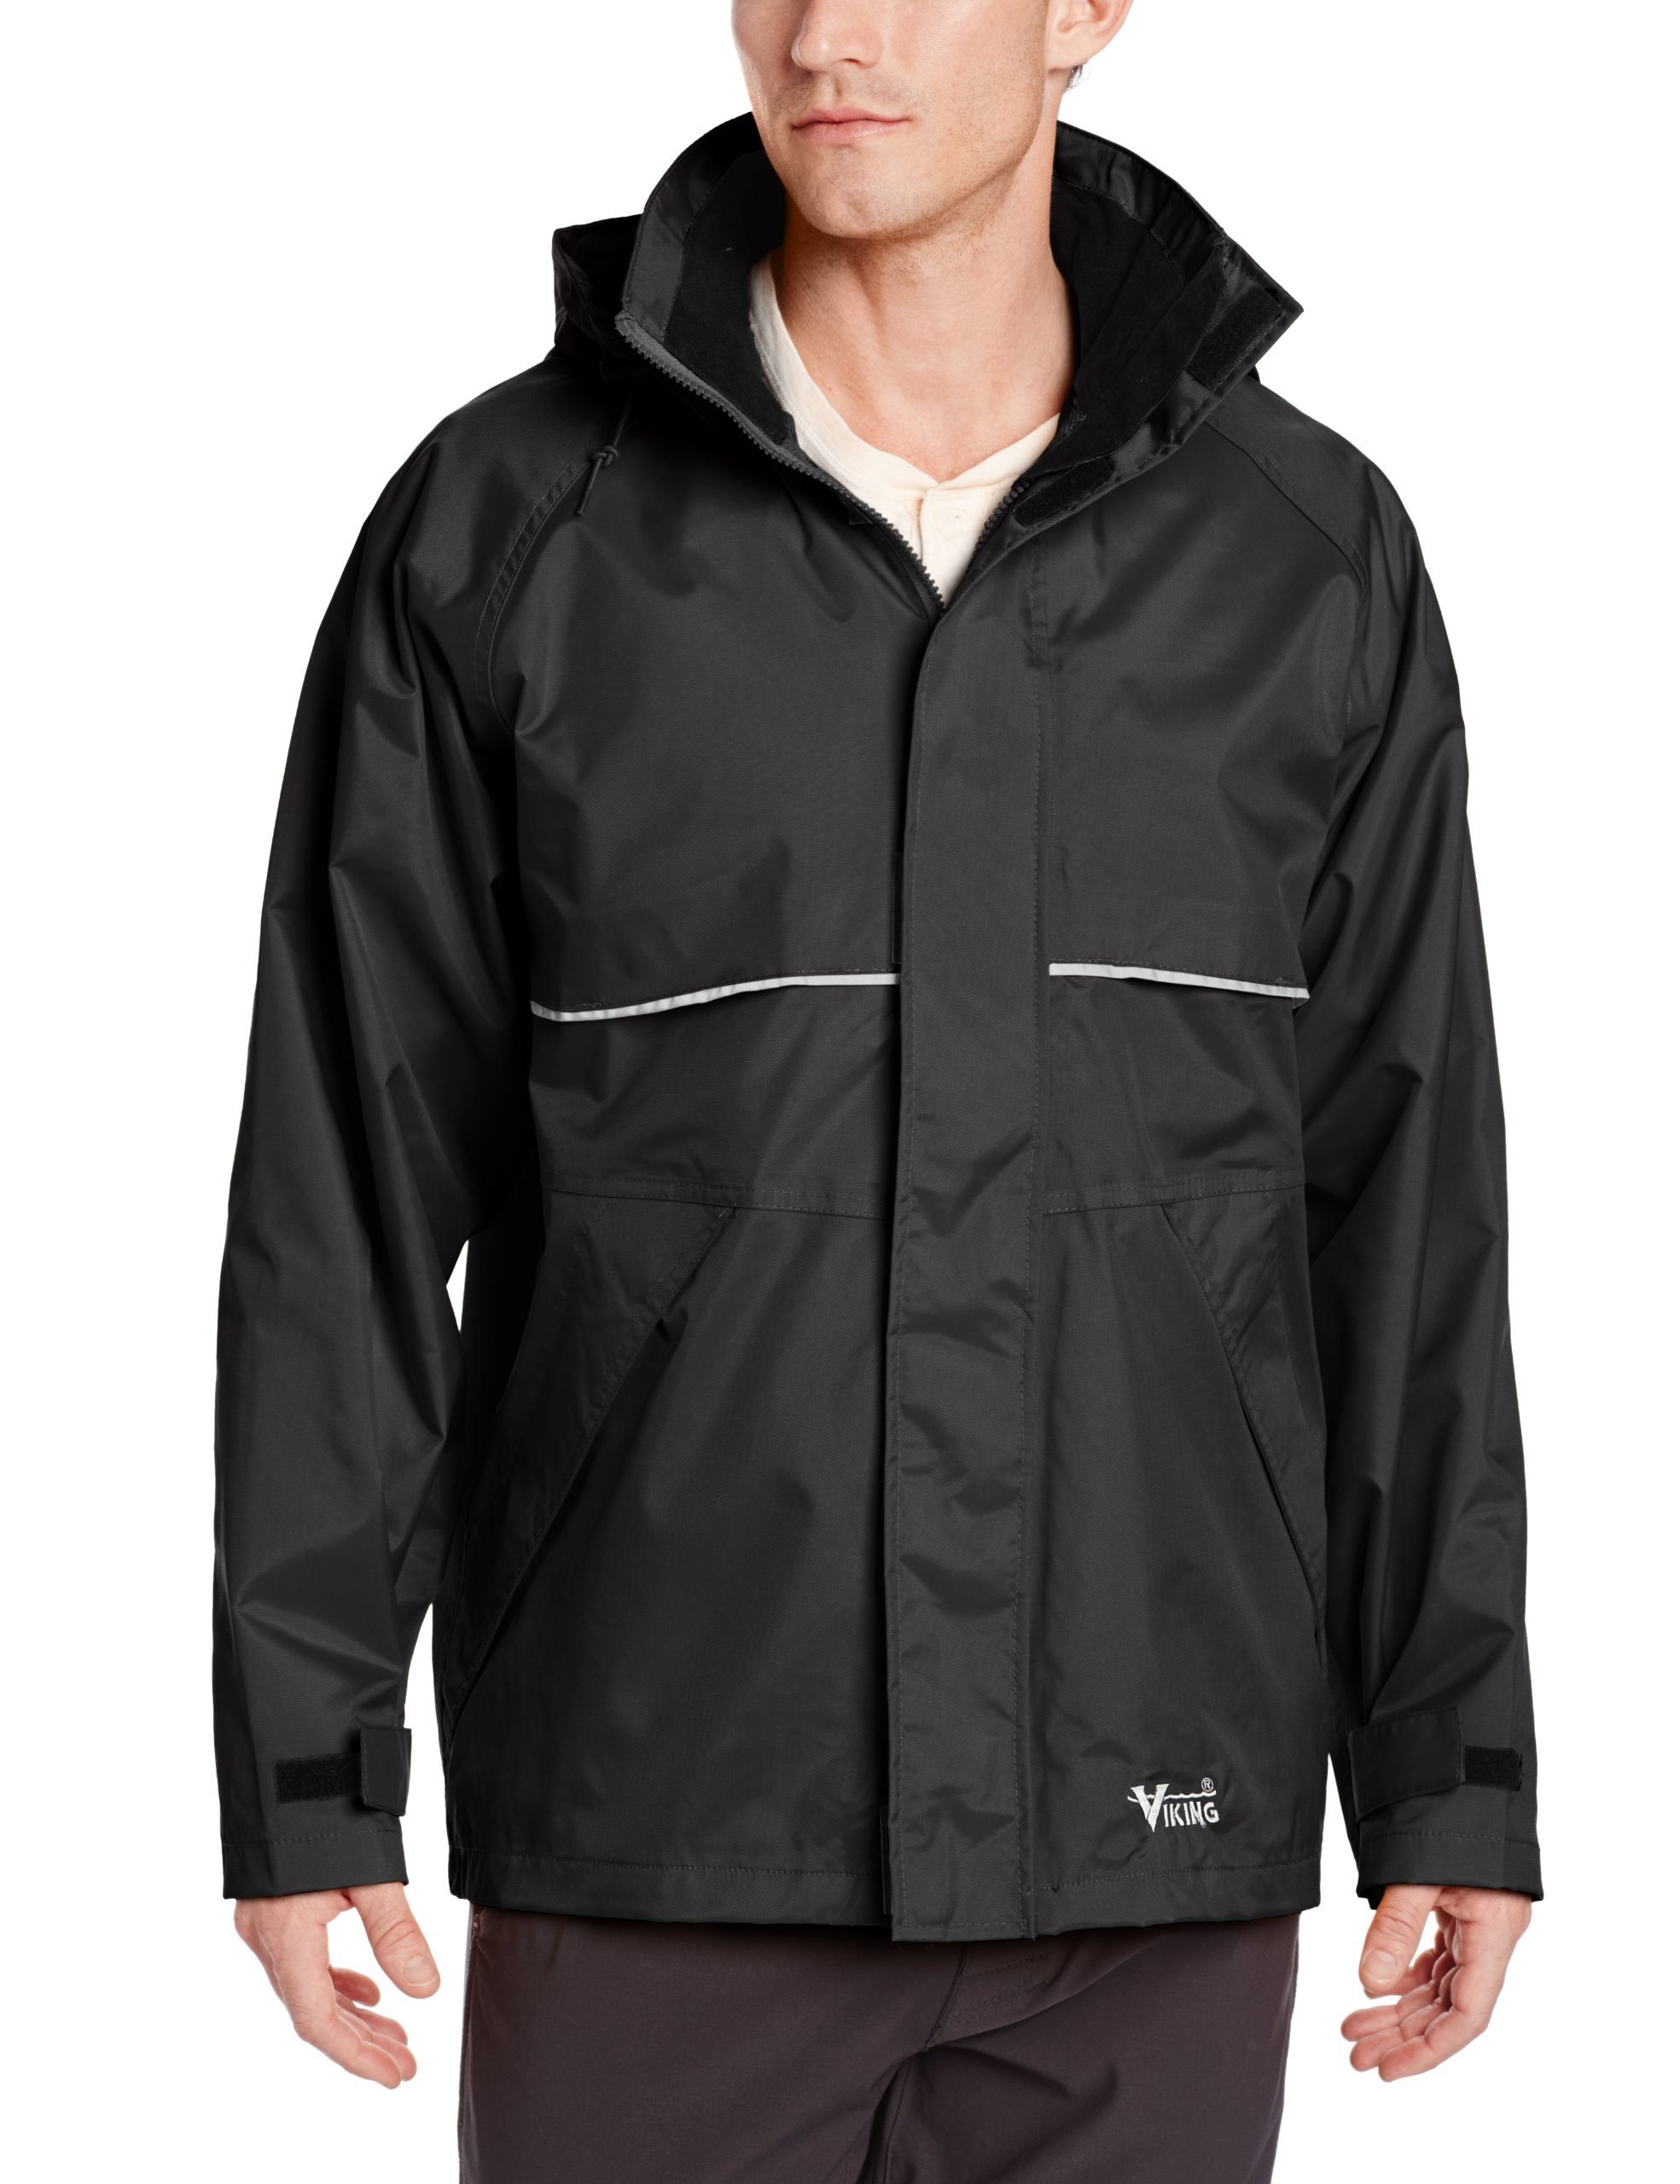 Viking Journeyman Waterproof Industrial Jacket, Black, Large by Viking